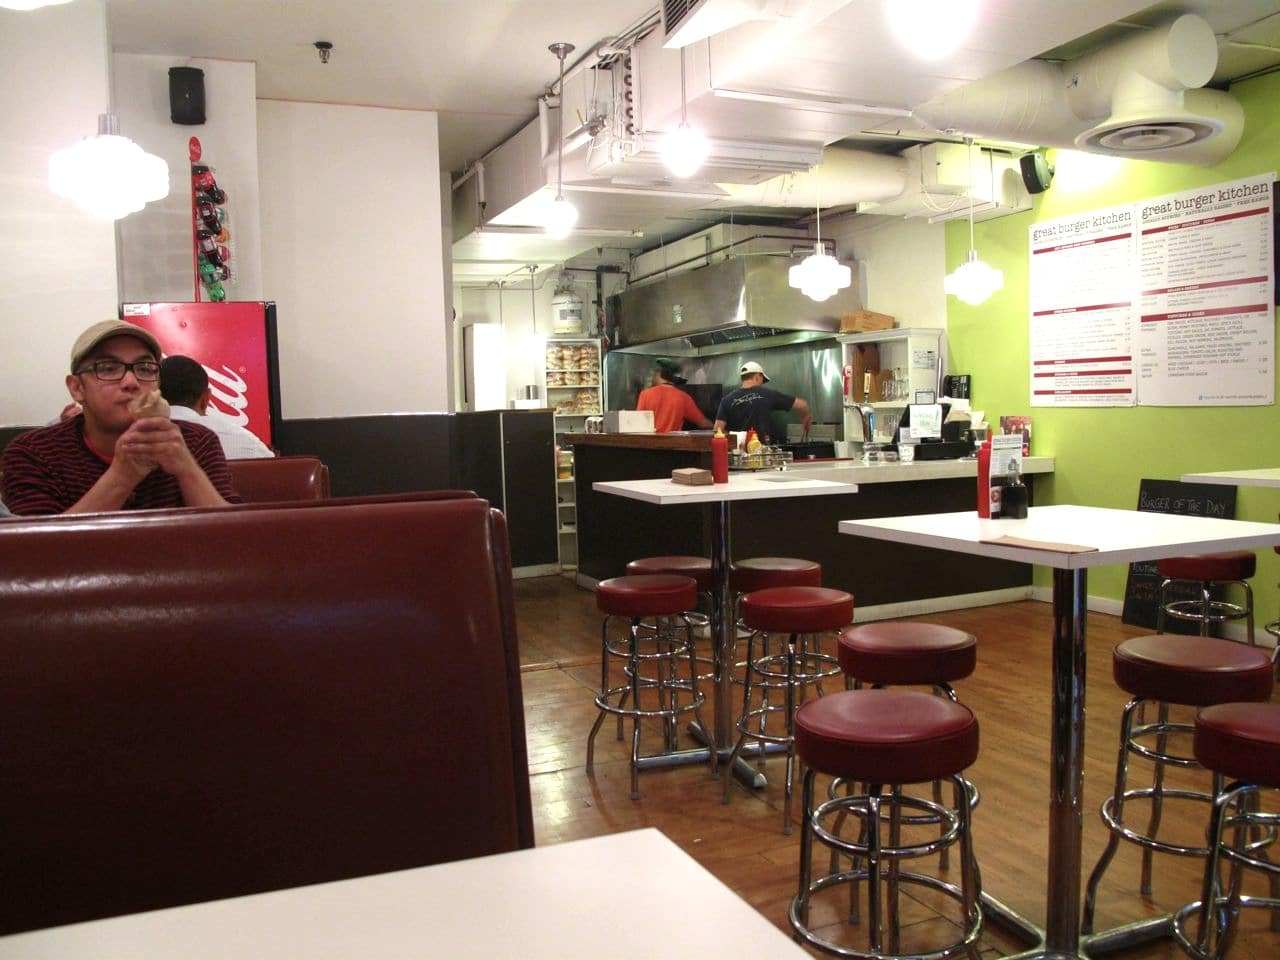 Great Burger Kitchen is one of the most popular burger restaurants in Toronto.